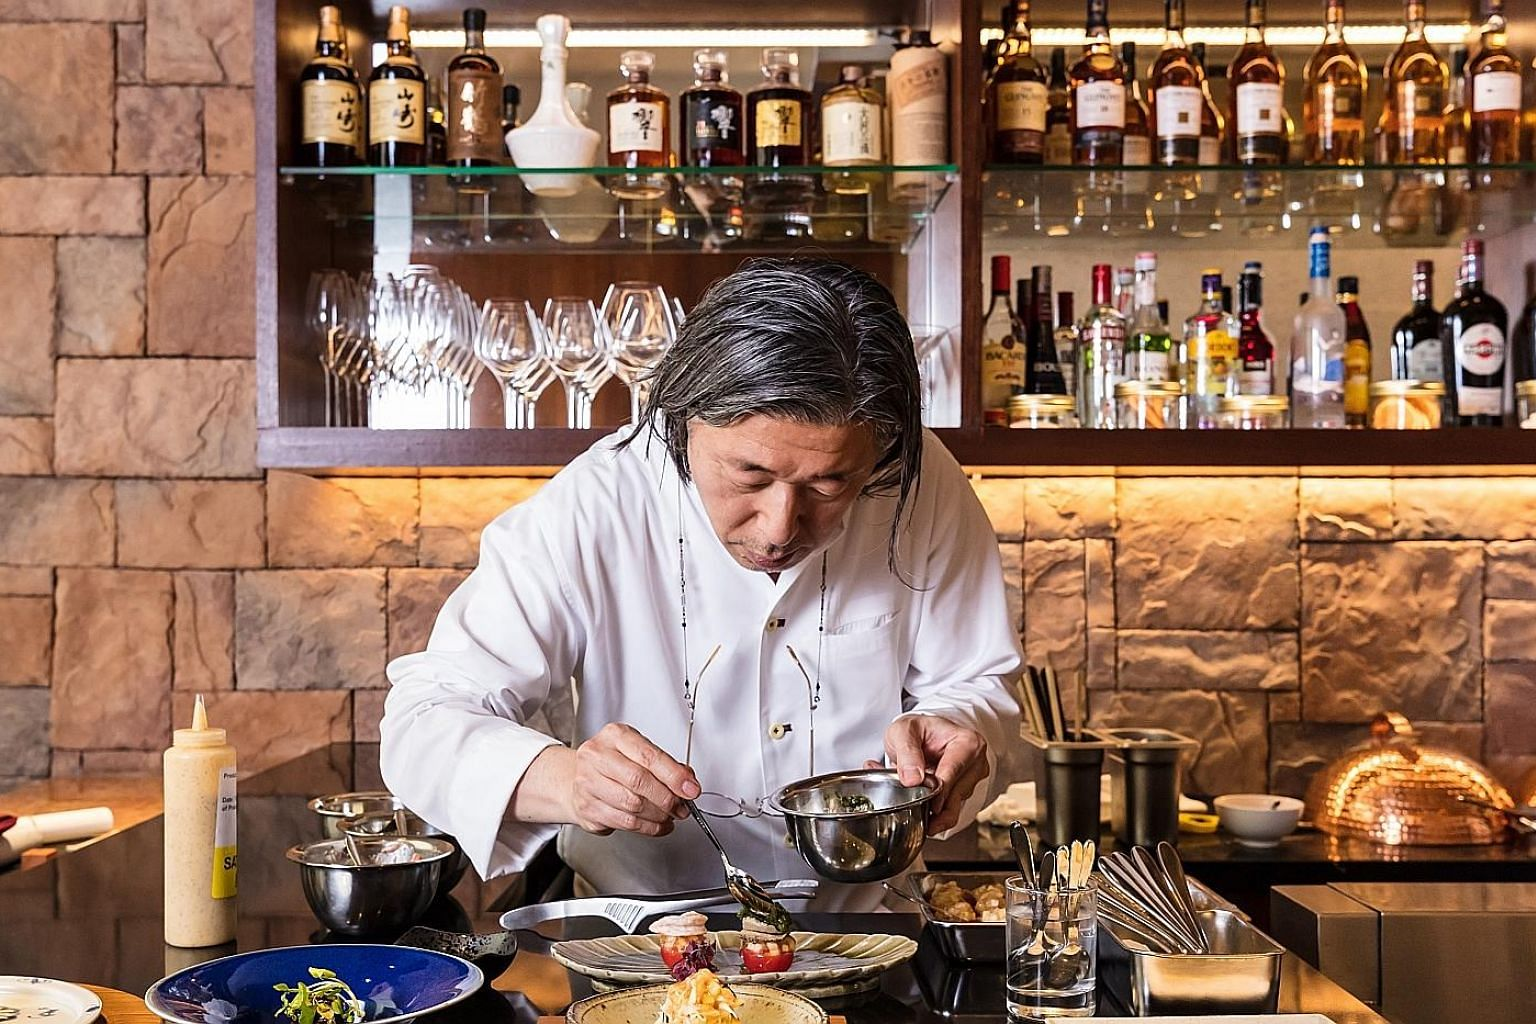 Chef Masayasu Yonemura from Teppan will be using ingredients flown in from Kansai to present exquisite, contemporary dishes true to his signature French-Japanese culinary style.